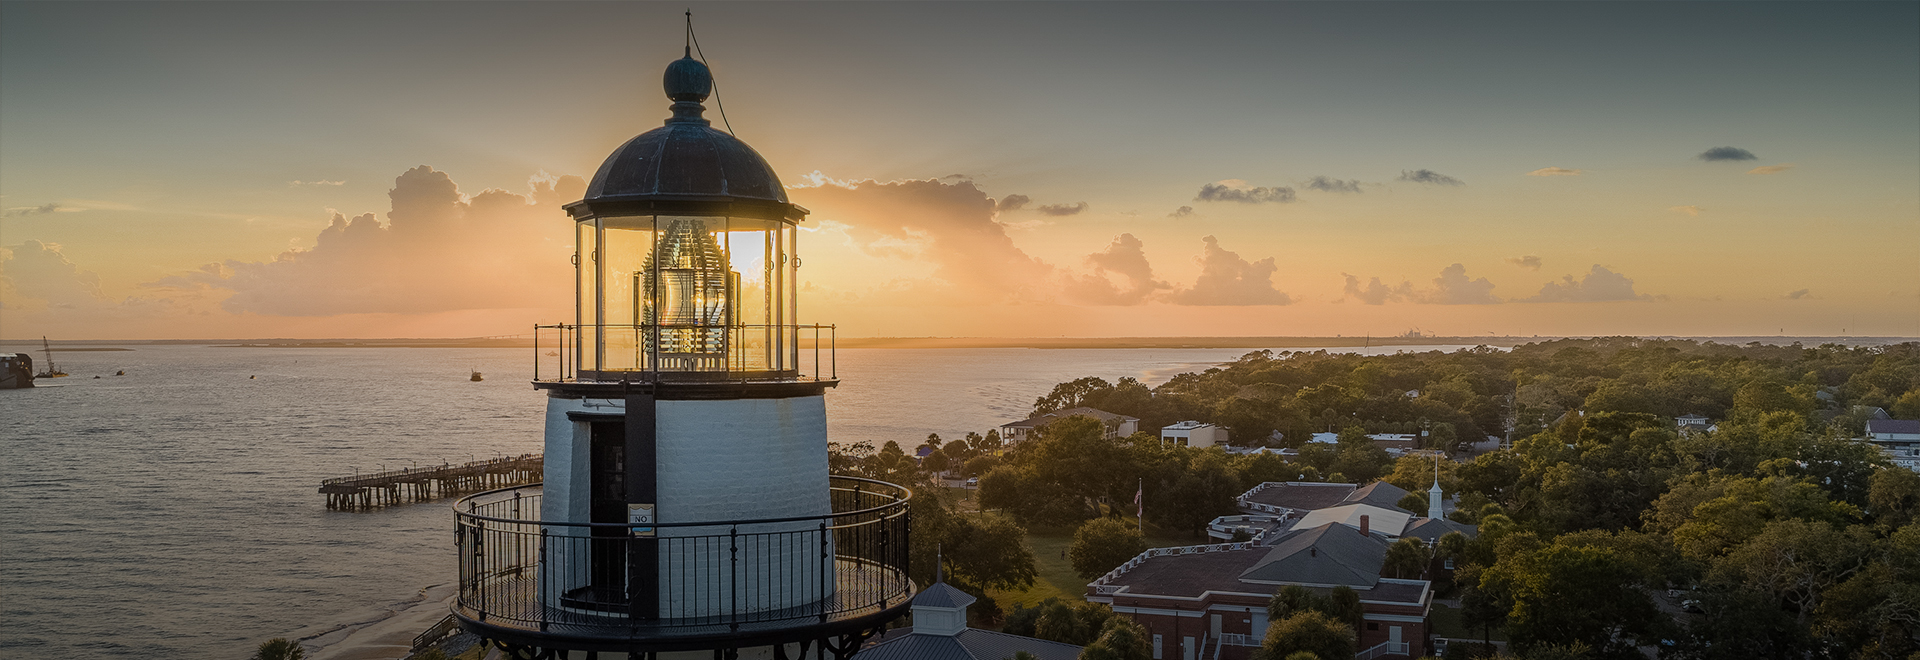 lighthouse with sunset view